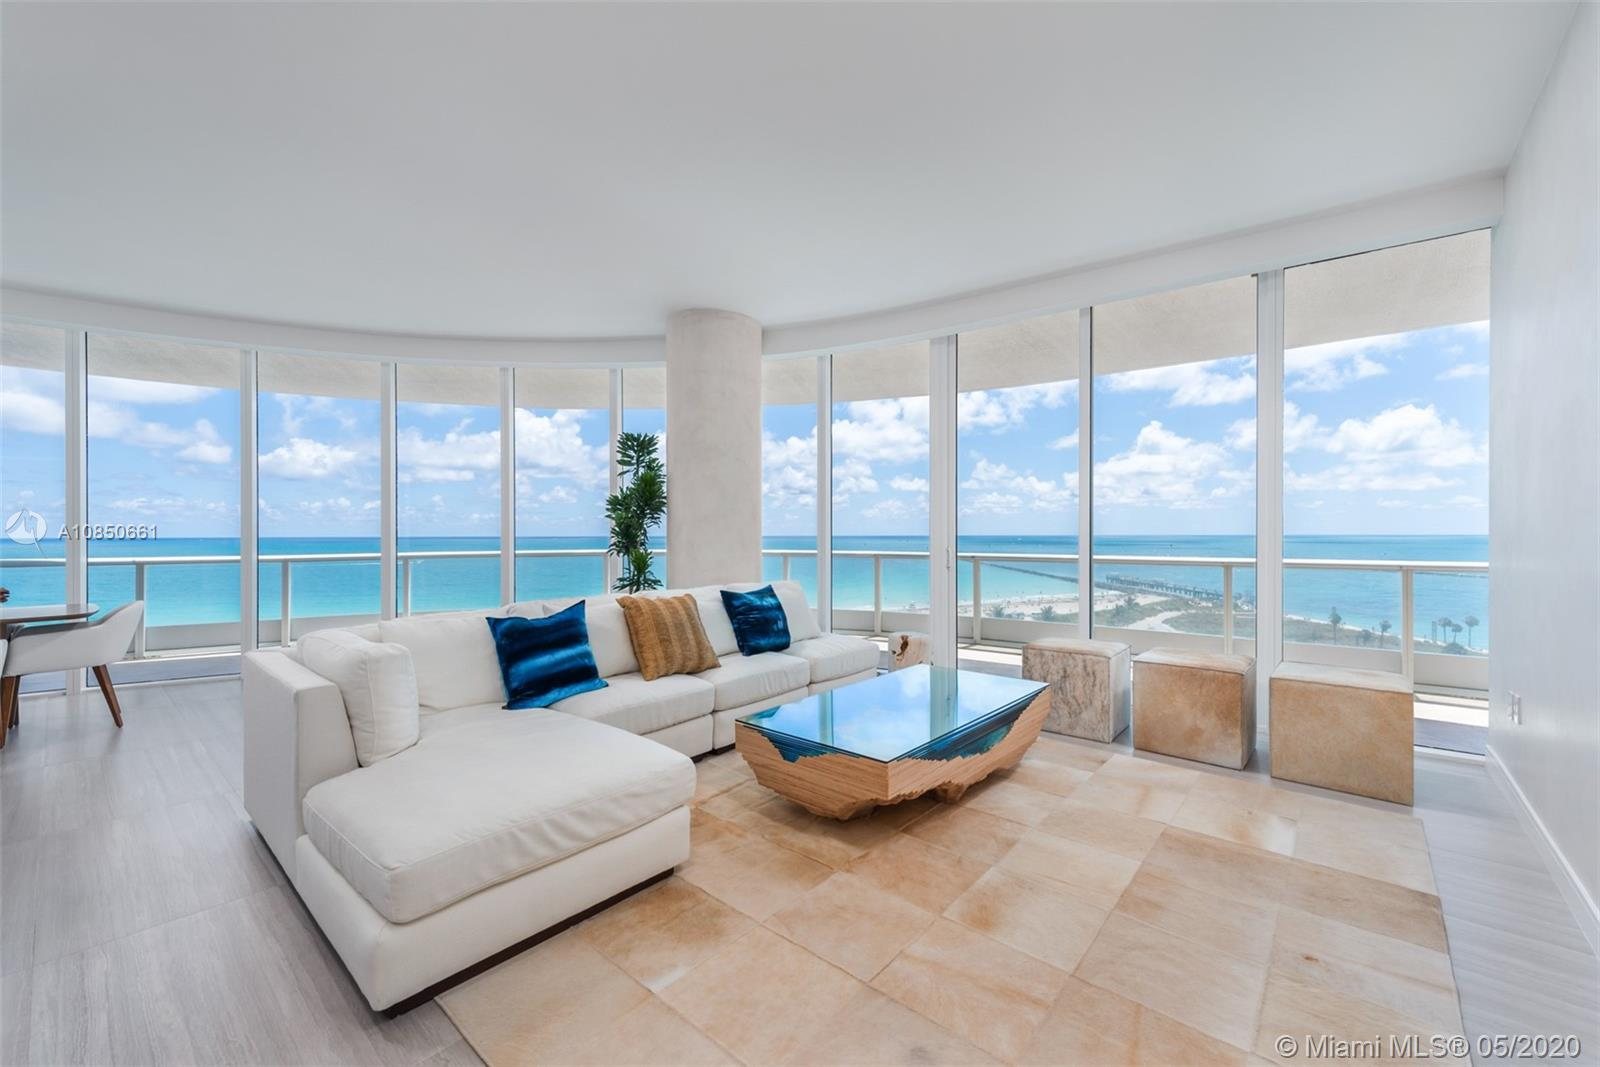 Enjoy the best views in Miami Beach from this coveted 06 line at Continuum South Tower. This 3 bed, 3.5 bath unit was recently renovated and furnished with exquisite taste. With over 13 acres of land and exclusive resort-style amenities, Continuum South Beach ranks top among South Florida's luxury condominiums. Residents have access to a full-service beach club, private oceanside restaurant, resort-style spa and fitness center, and much more.